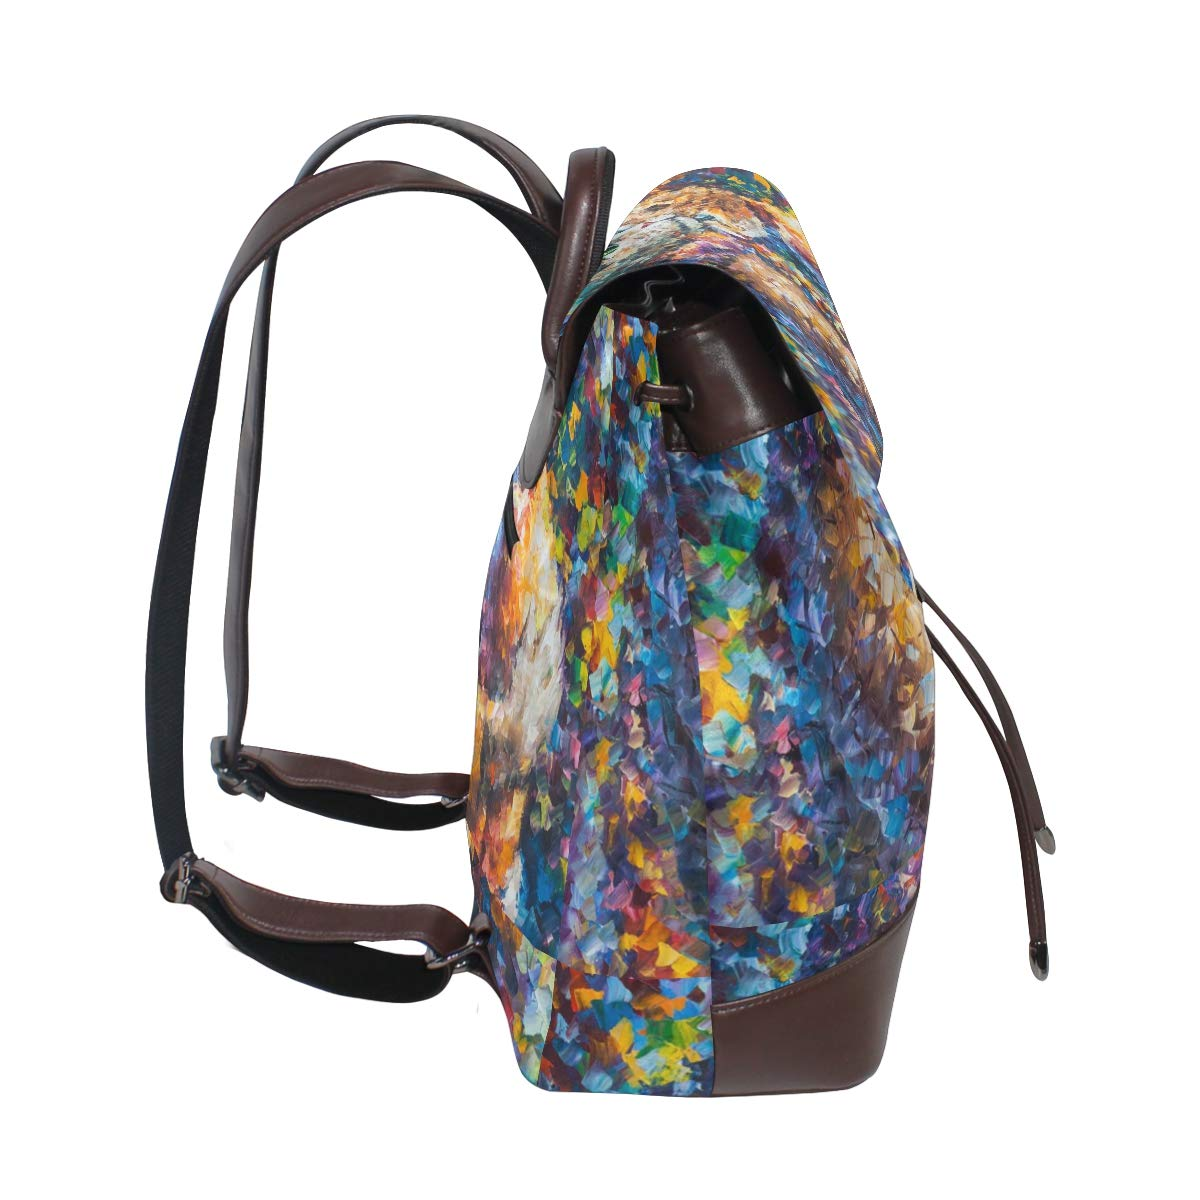 PU Leather Shoulder Bag,Couple Of Colorful Cats Backpack,Portable Travel School Rucksack,Satchel with Top Handle